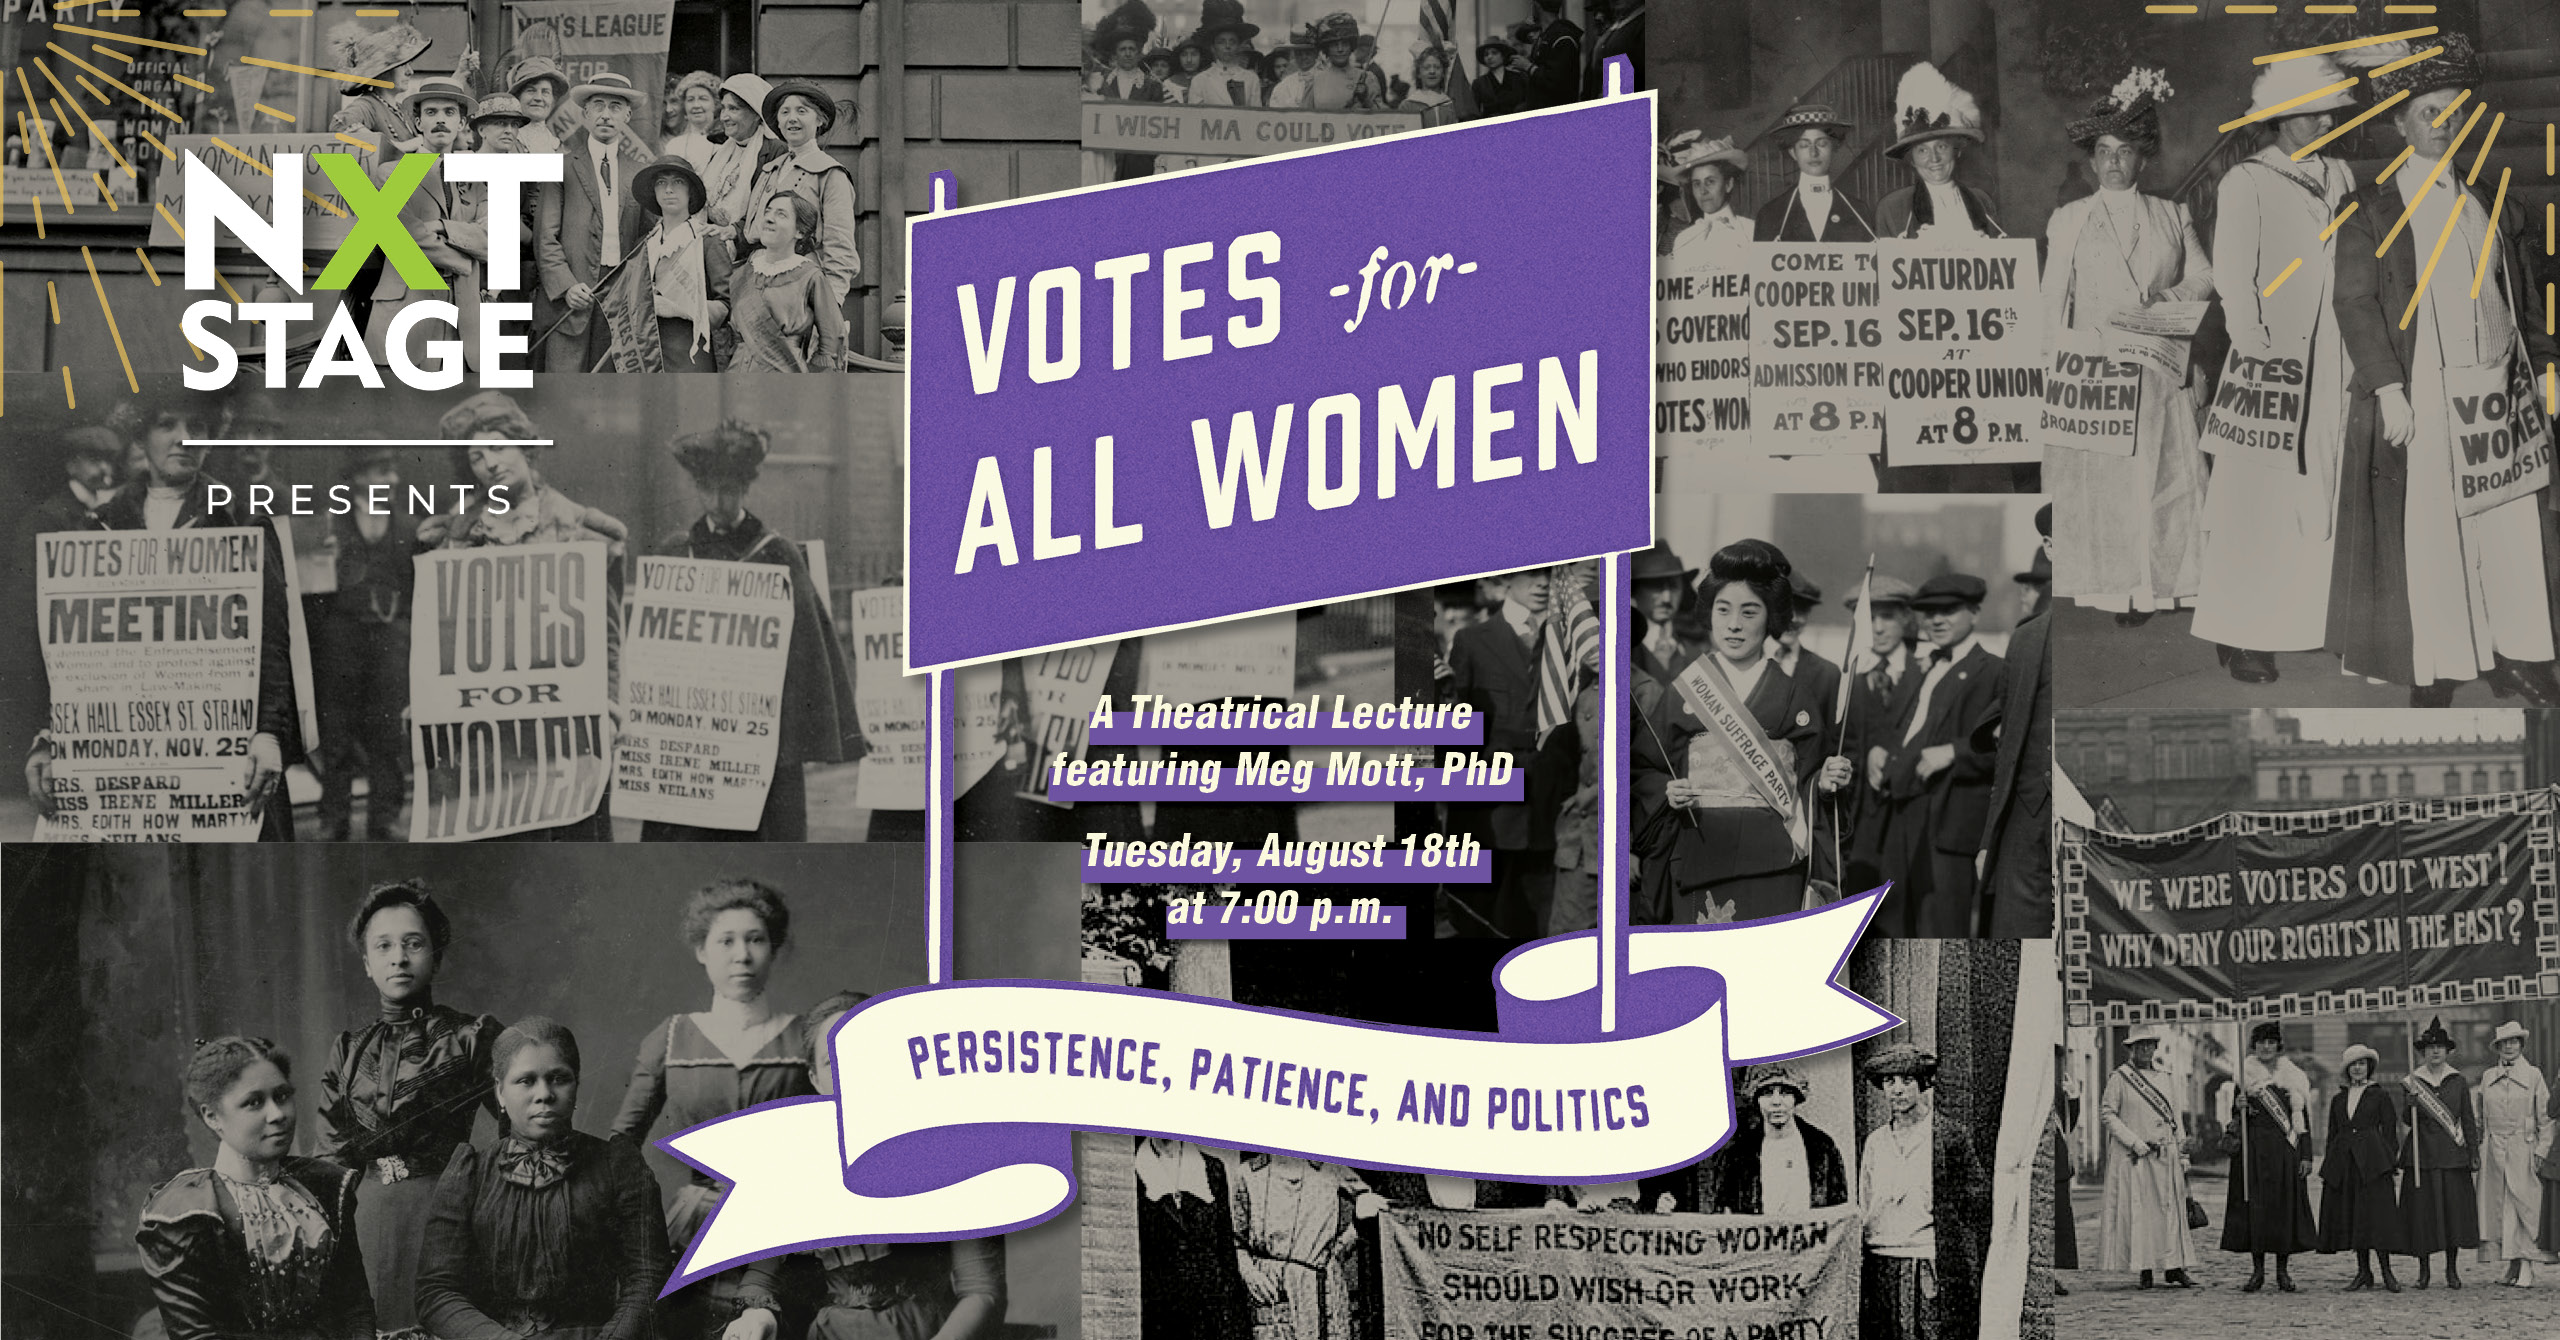 an image of suffragists persistence, patience & politics